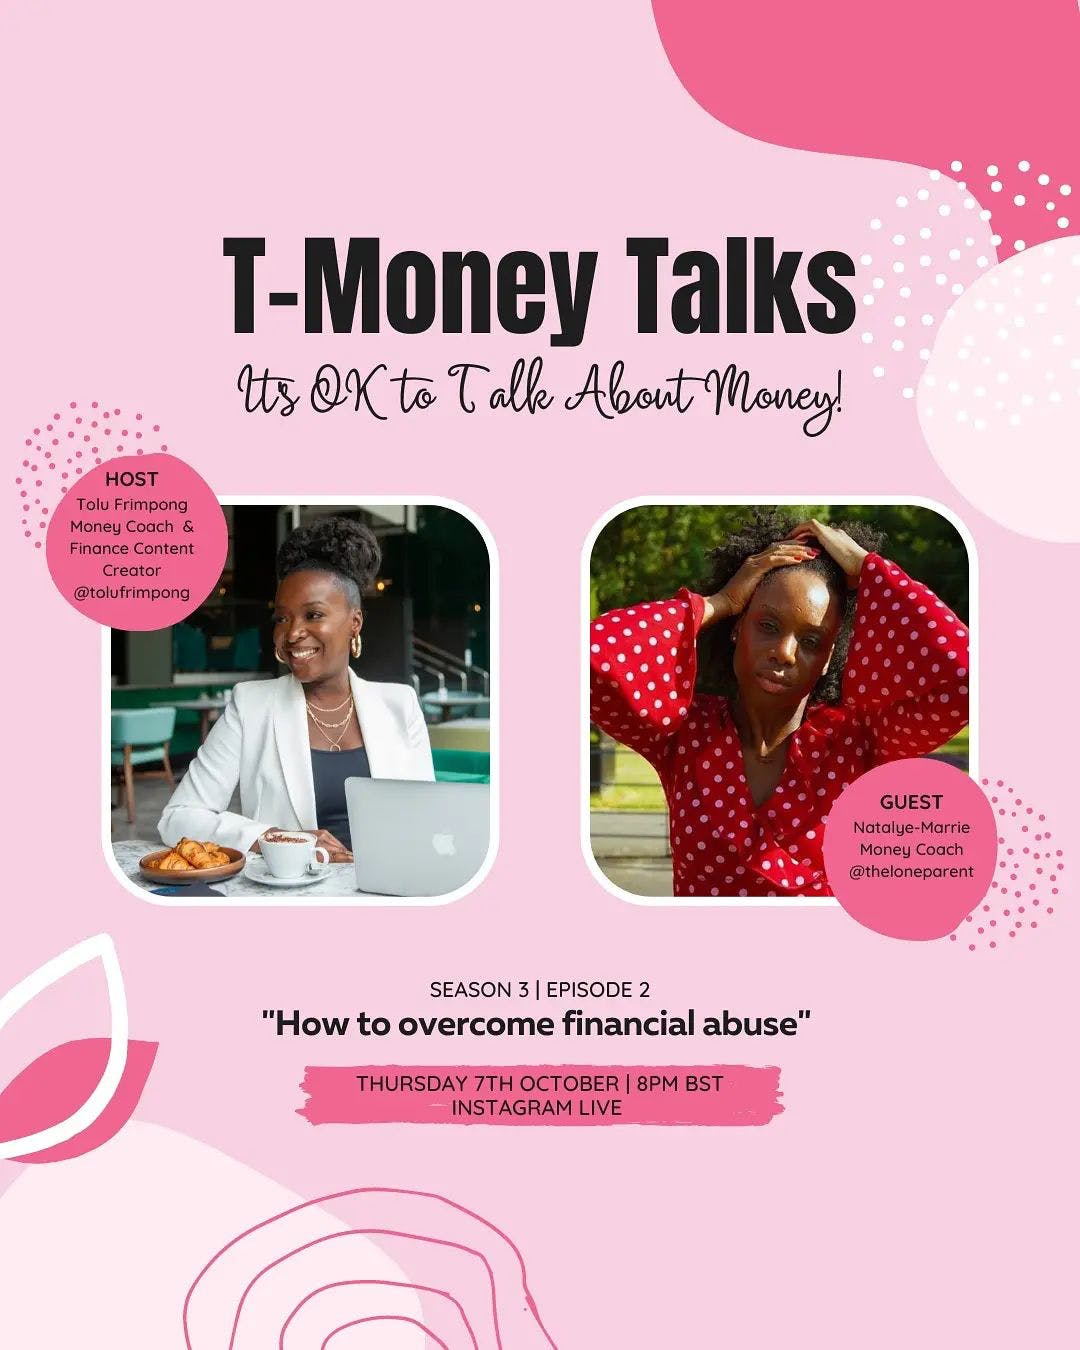 I'm so excited to announce that I'll be joined by Natalye-Marrie Boyce founder of @theloneparent to discuss the extremely sensitive topic of financial abuse.   Natalye is a single mum of two who helps other single mums break hold of debt and create the financial freedom they deserve.   Join us tomorrow night at 8pm BST to hear Natalye's inspiring story of how she was able to overcome financial abuse and achieve debt freedom.  Head to my IG stories to turn your reminder on so you don't miss it. . . .  #tmoneytalks #financialfreedom #financialindependence #financialabuse #financialeducation #financialgoals #ukdebtfreecommunity #debtfreecommunityuk  #moneycoach #financecoach #personalfinancecoach #moneycoachUK #budgetcoach #mummyblogger #mumblog #mumlife #mumsofinstagram  #motherhoodthroughinstagram   #motherhoodunplugged #momblogger